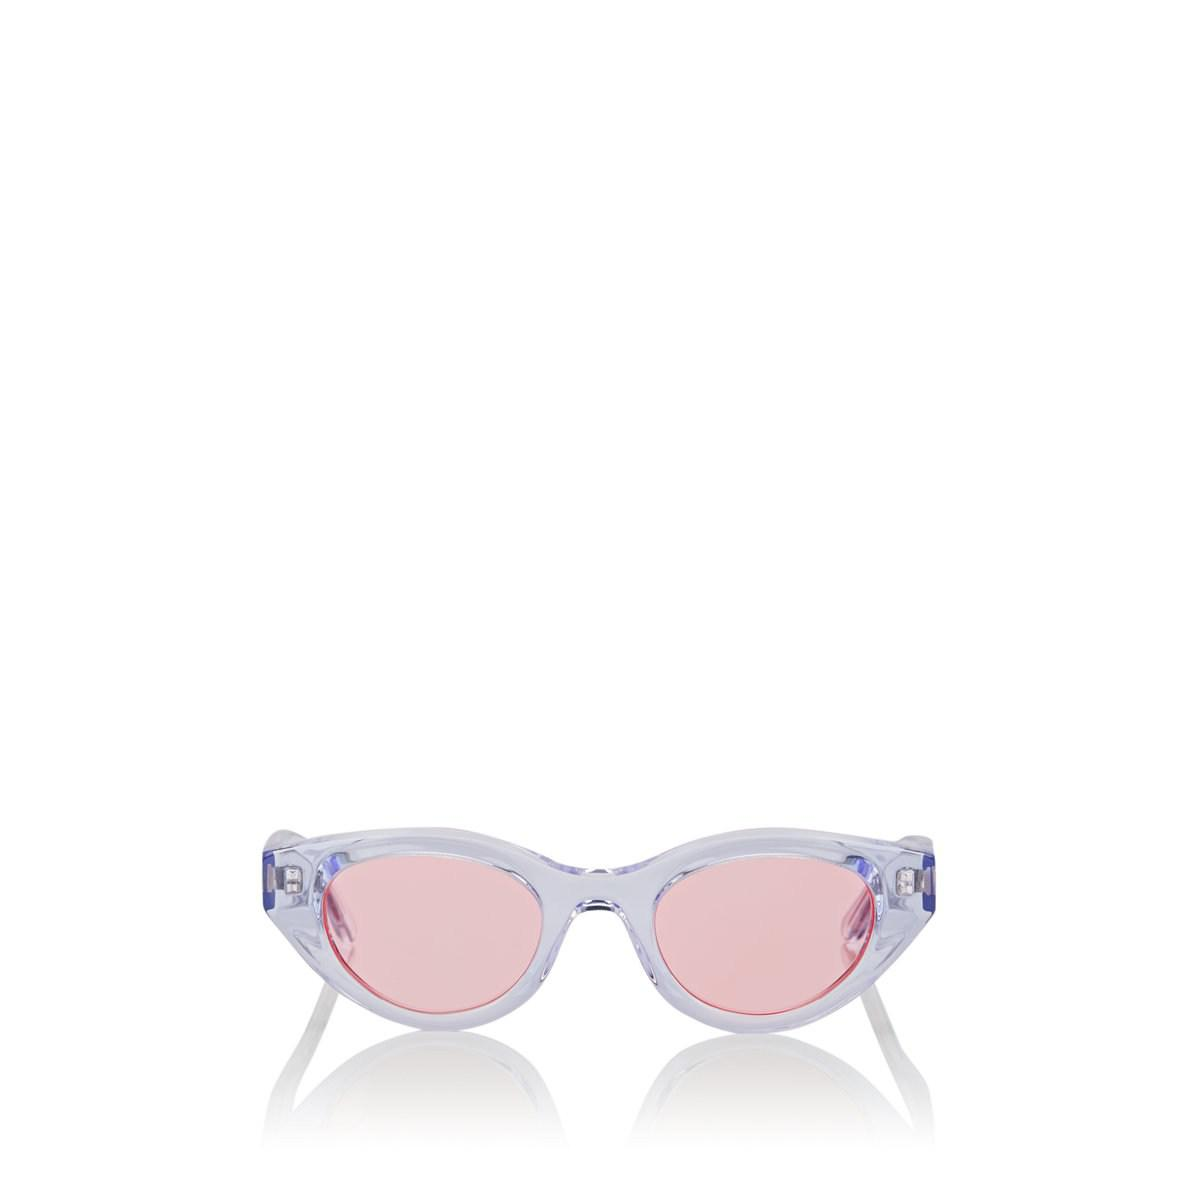 516baa5d33 Lyst - Thierry Lasry Acidity Sunglasses in Pink